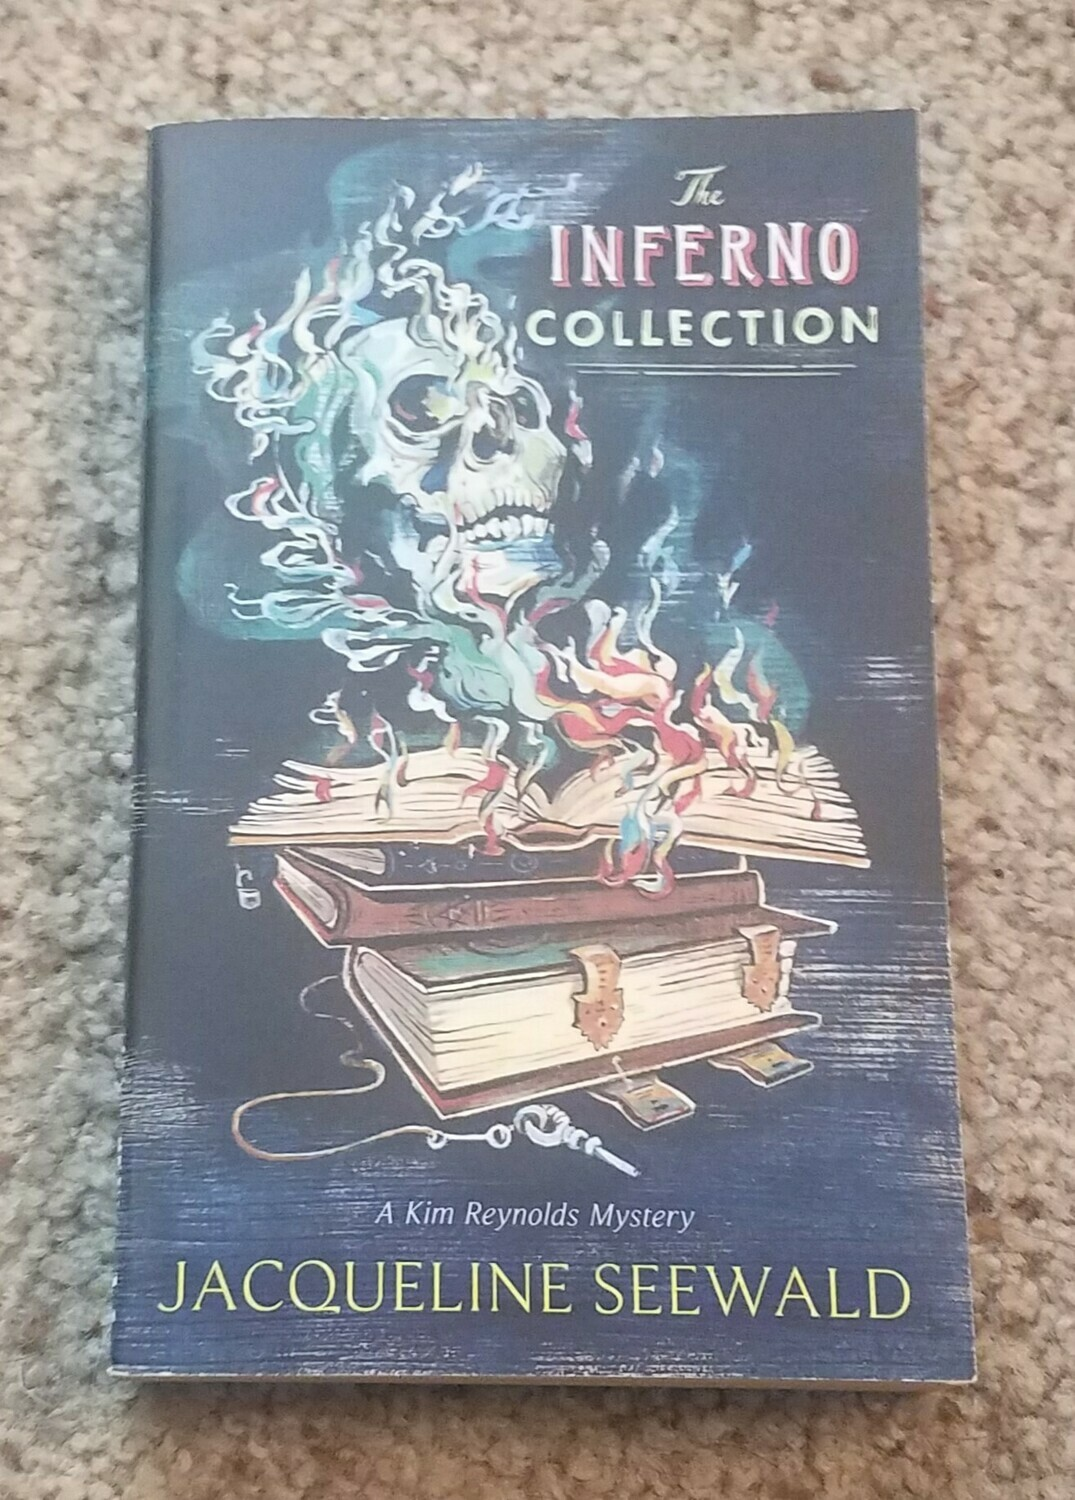 The Inferno Collection by Jacqueline Seewald